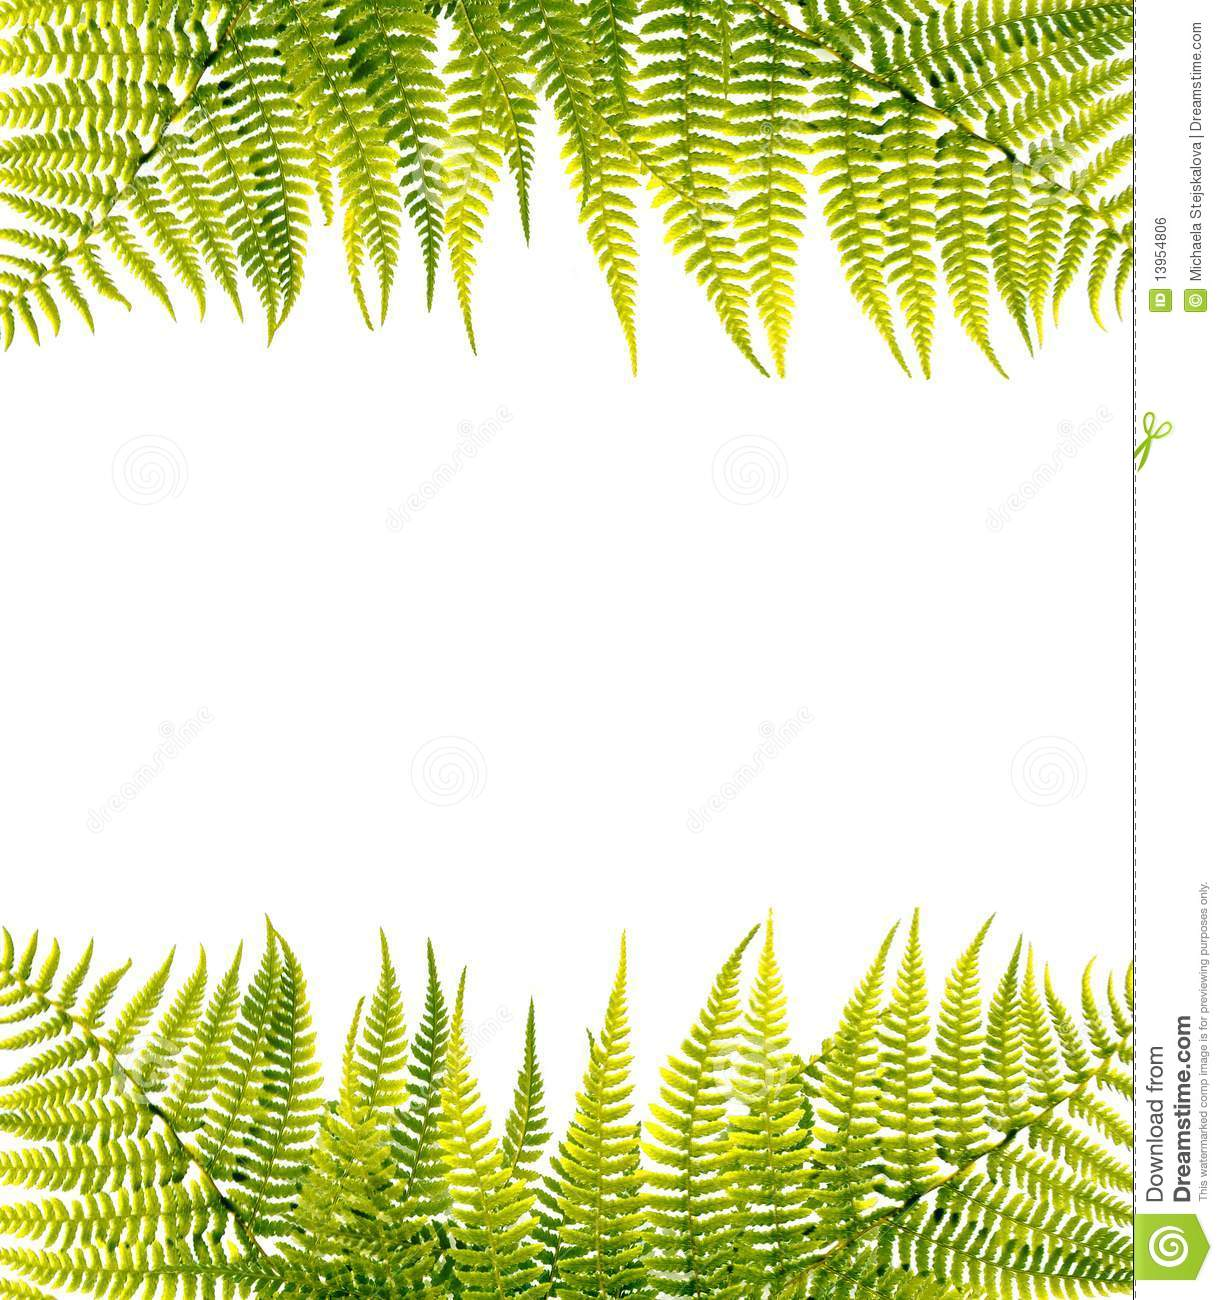 Green Border Green fern border, isolated on